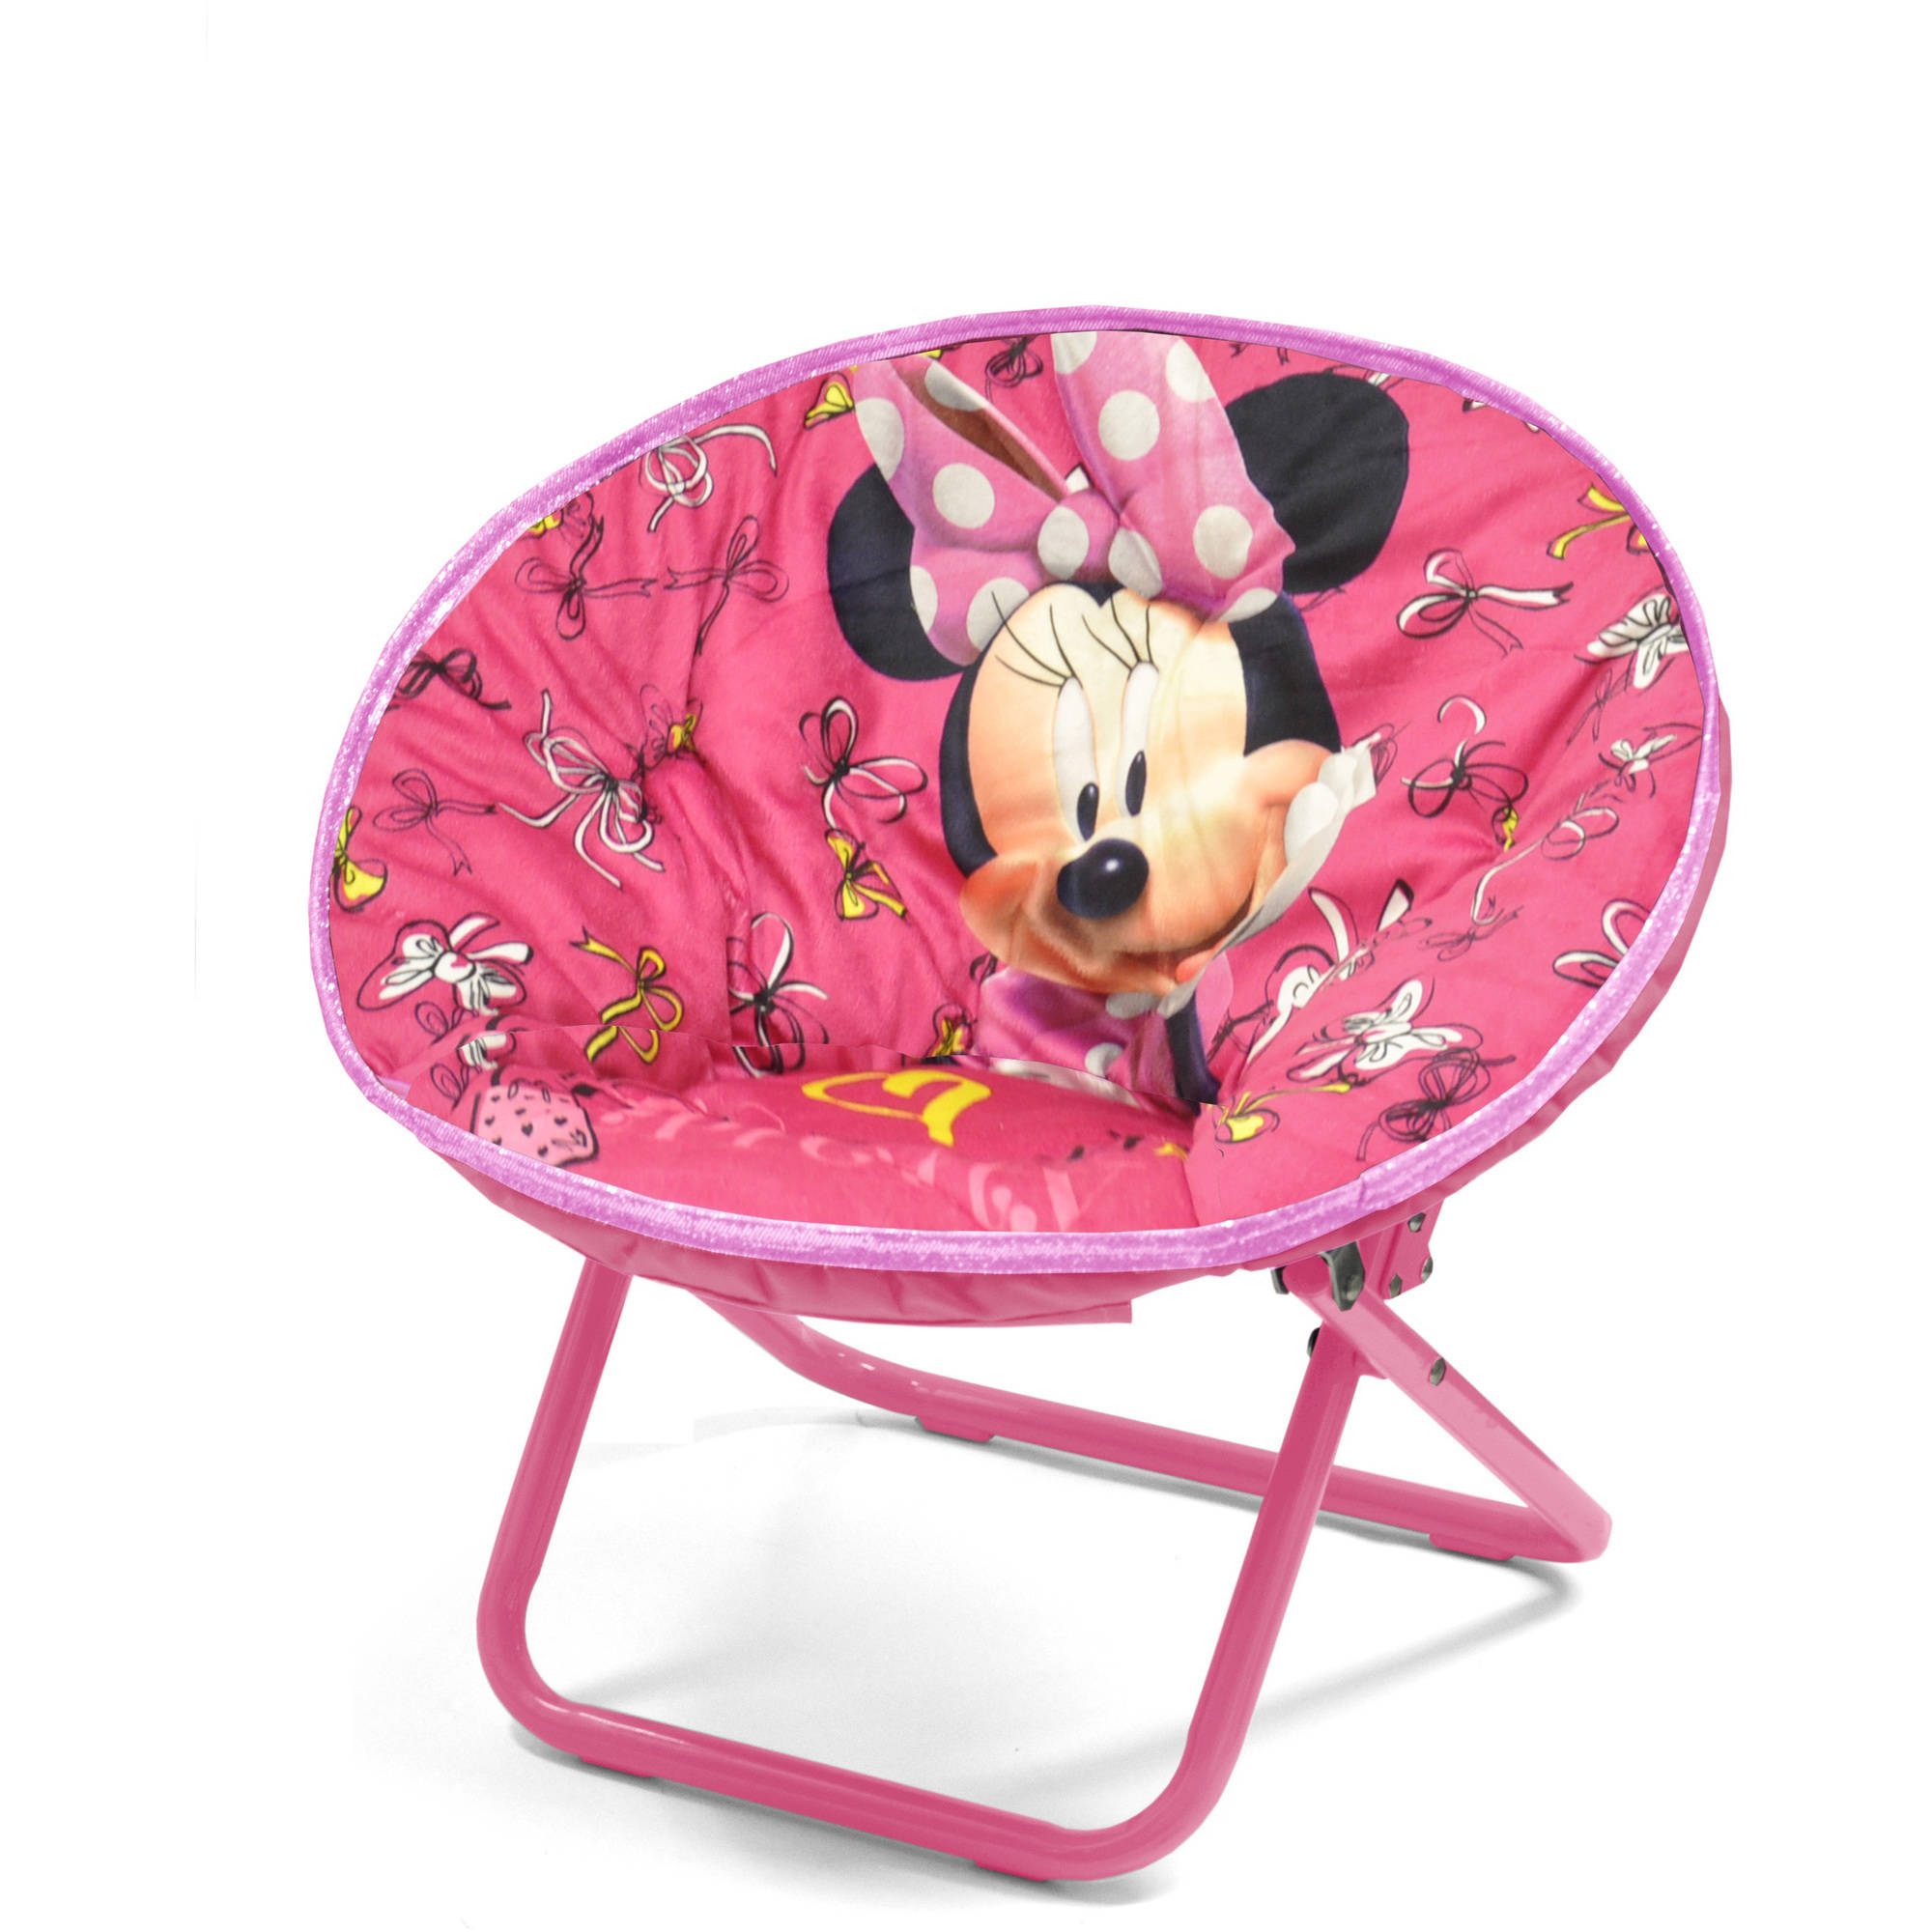 Disney Minnie Mouse Saucer Chair Walmart